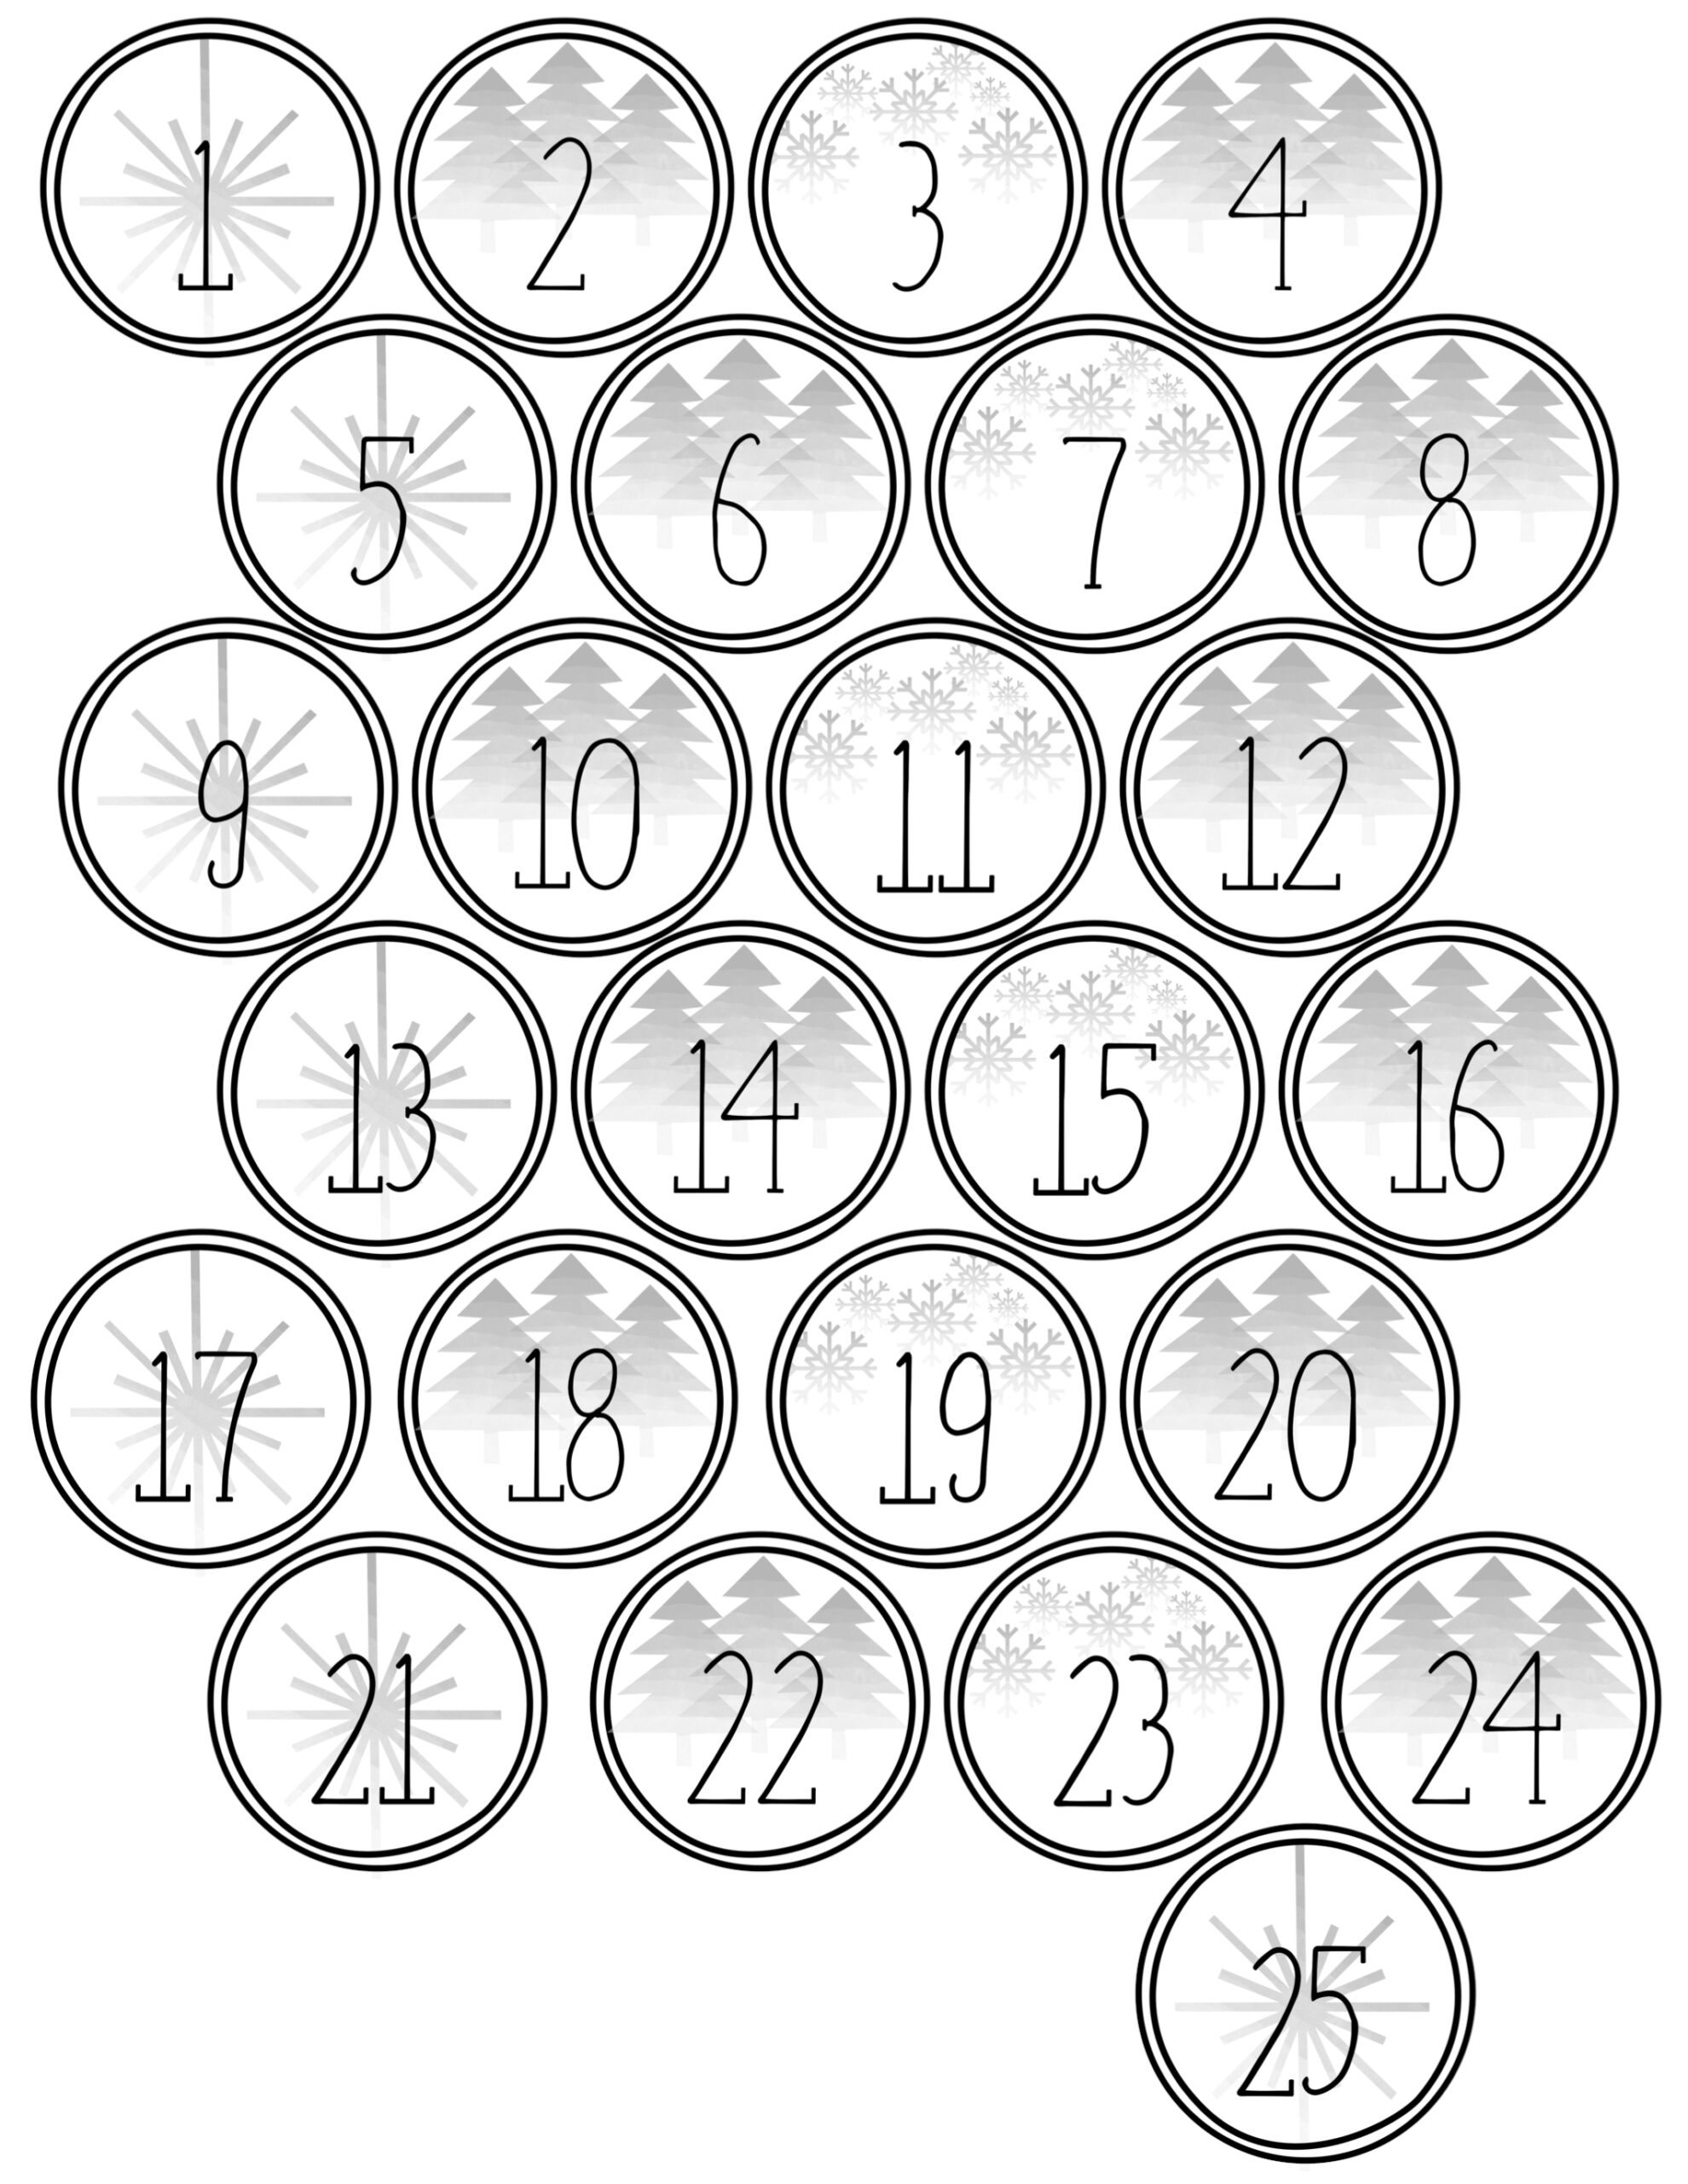 Christmas advent calendar printable numbers paper trail design advent calendar printable numbers christmas diy advent calendar template free printable christmas advent calendar tree saigontimesfo